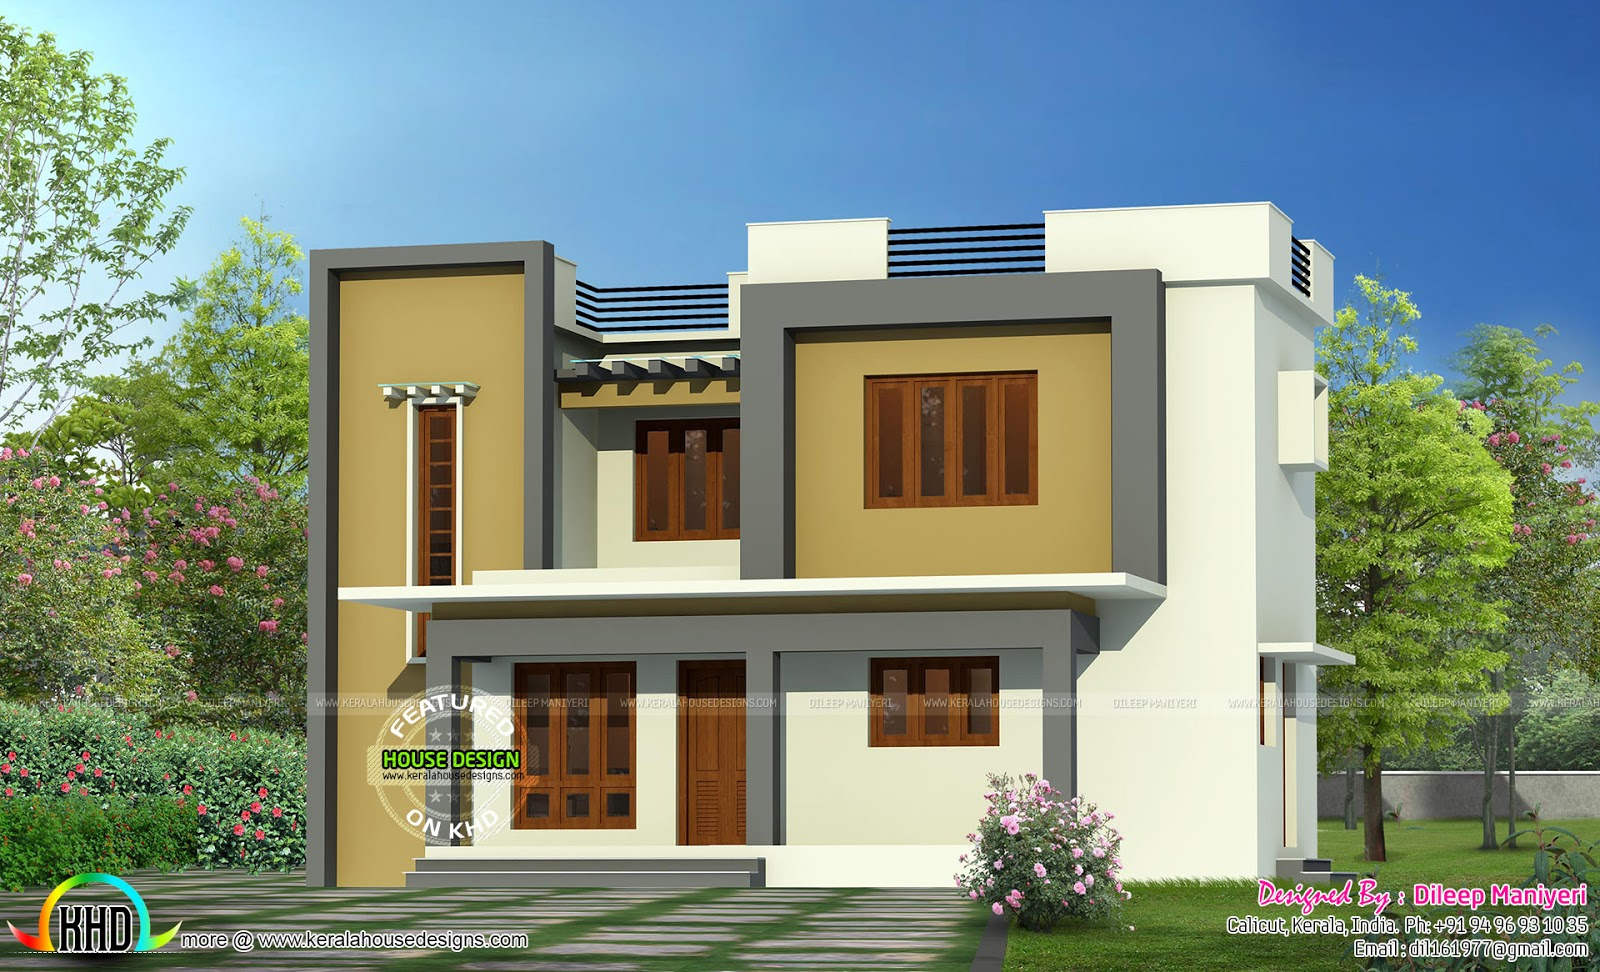 Simple flat roof house designs for Simple house designs